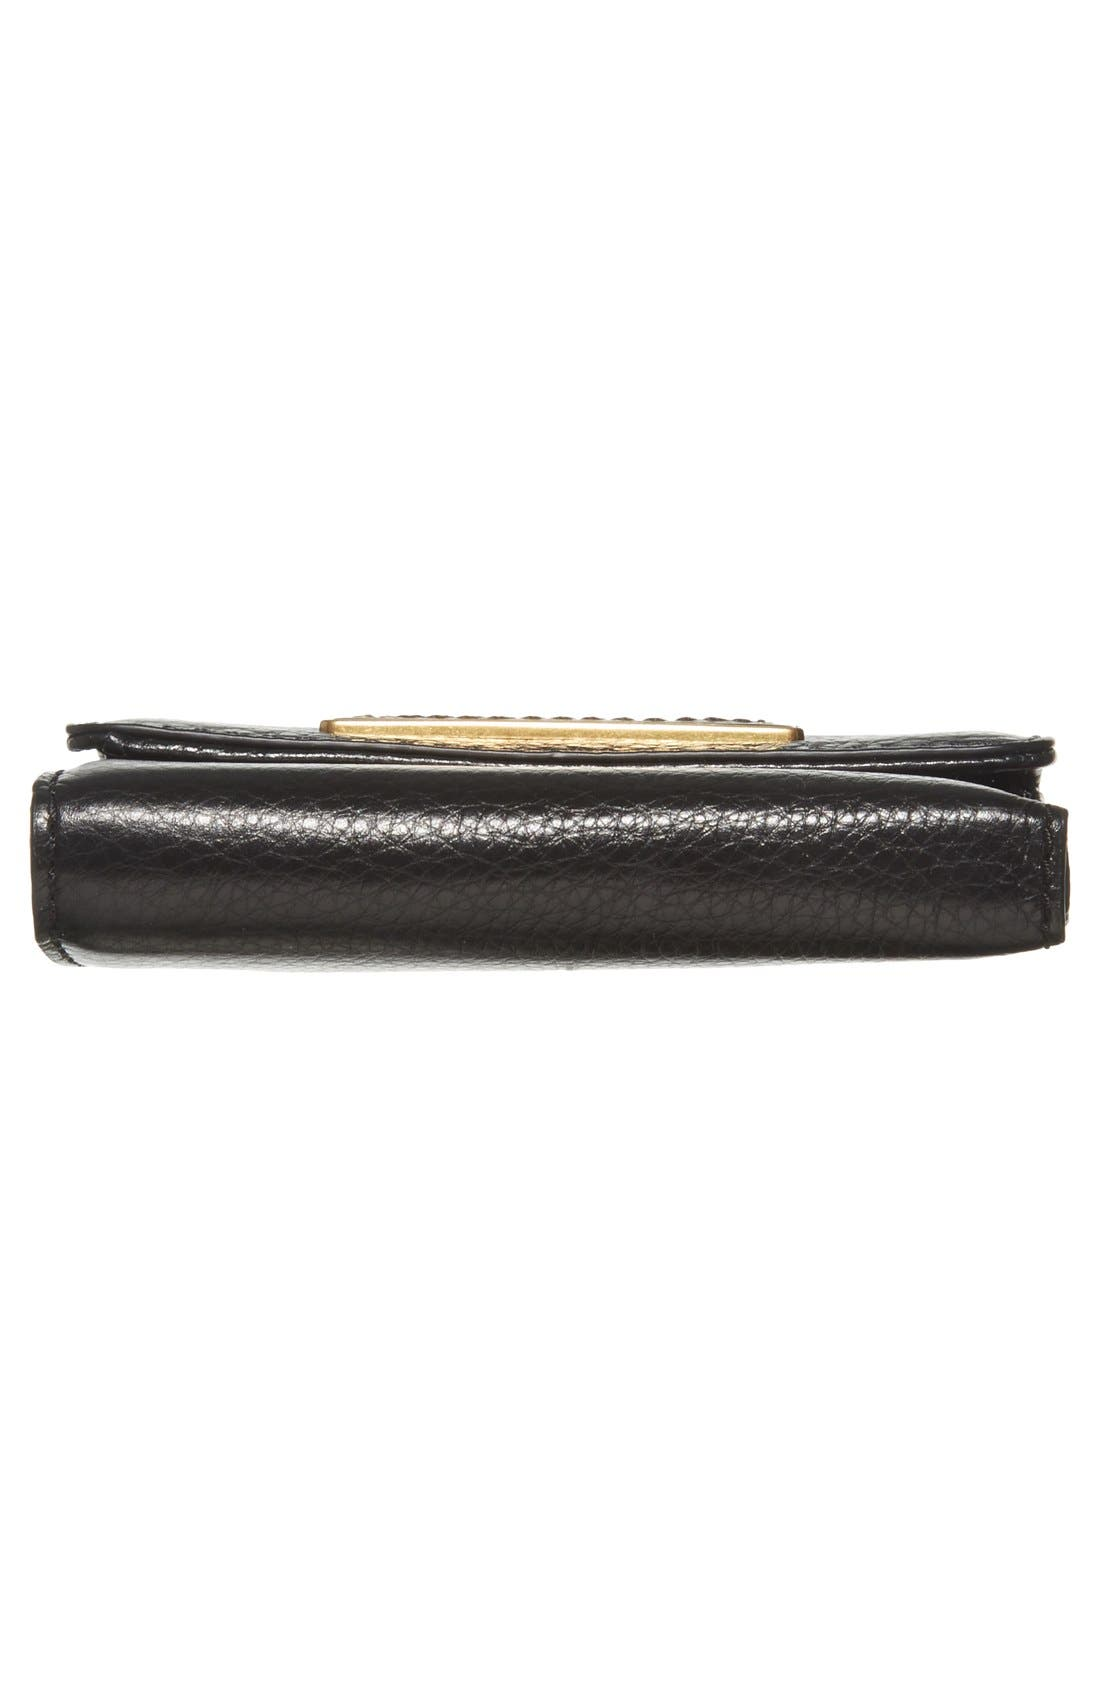 MARC BY MARC JACOBS 'Too Hot to Handle' Billfold Wallet,                             Alternate thumbnail 3, color,                             001